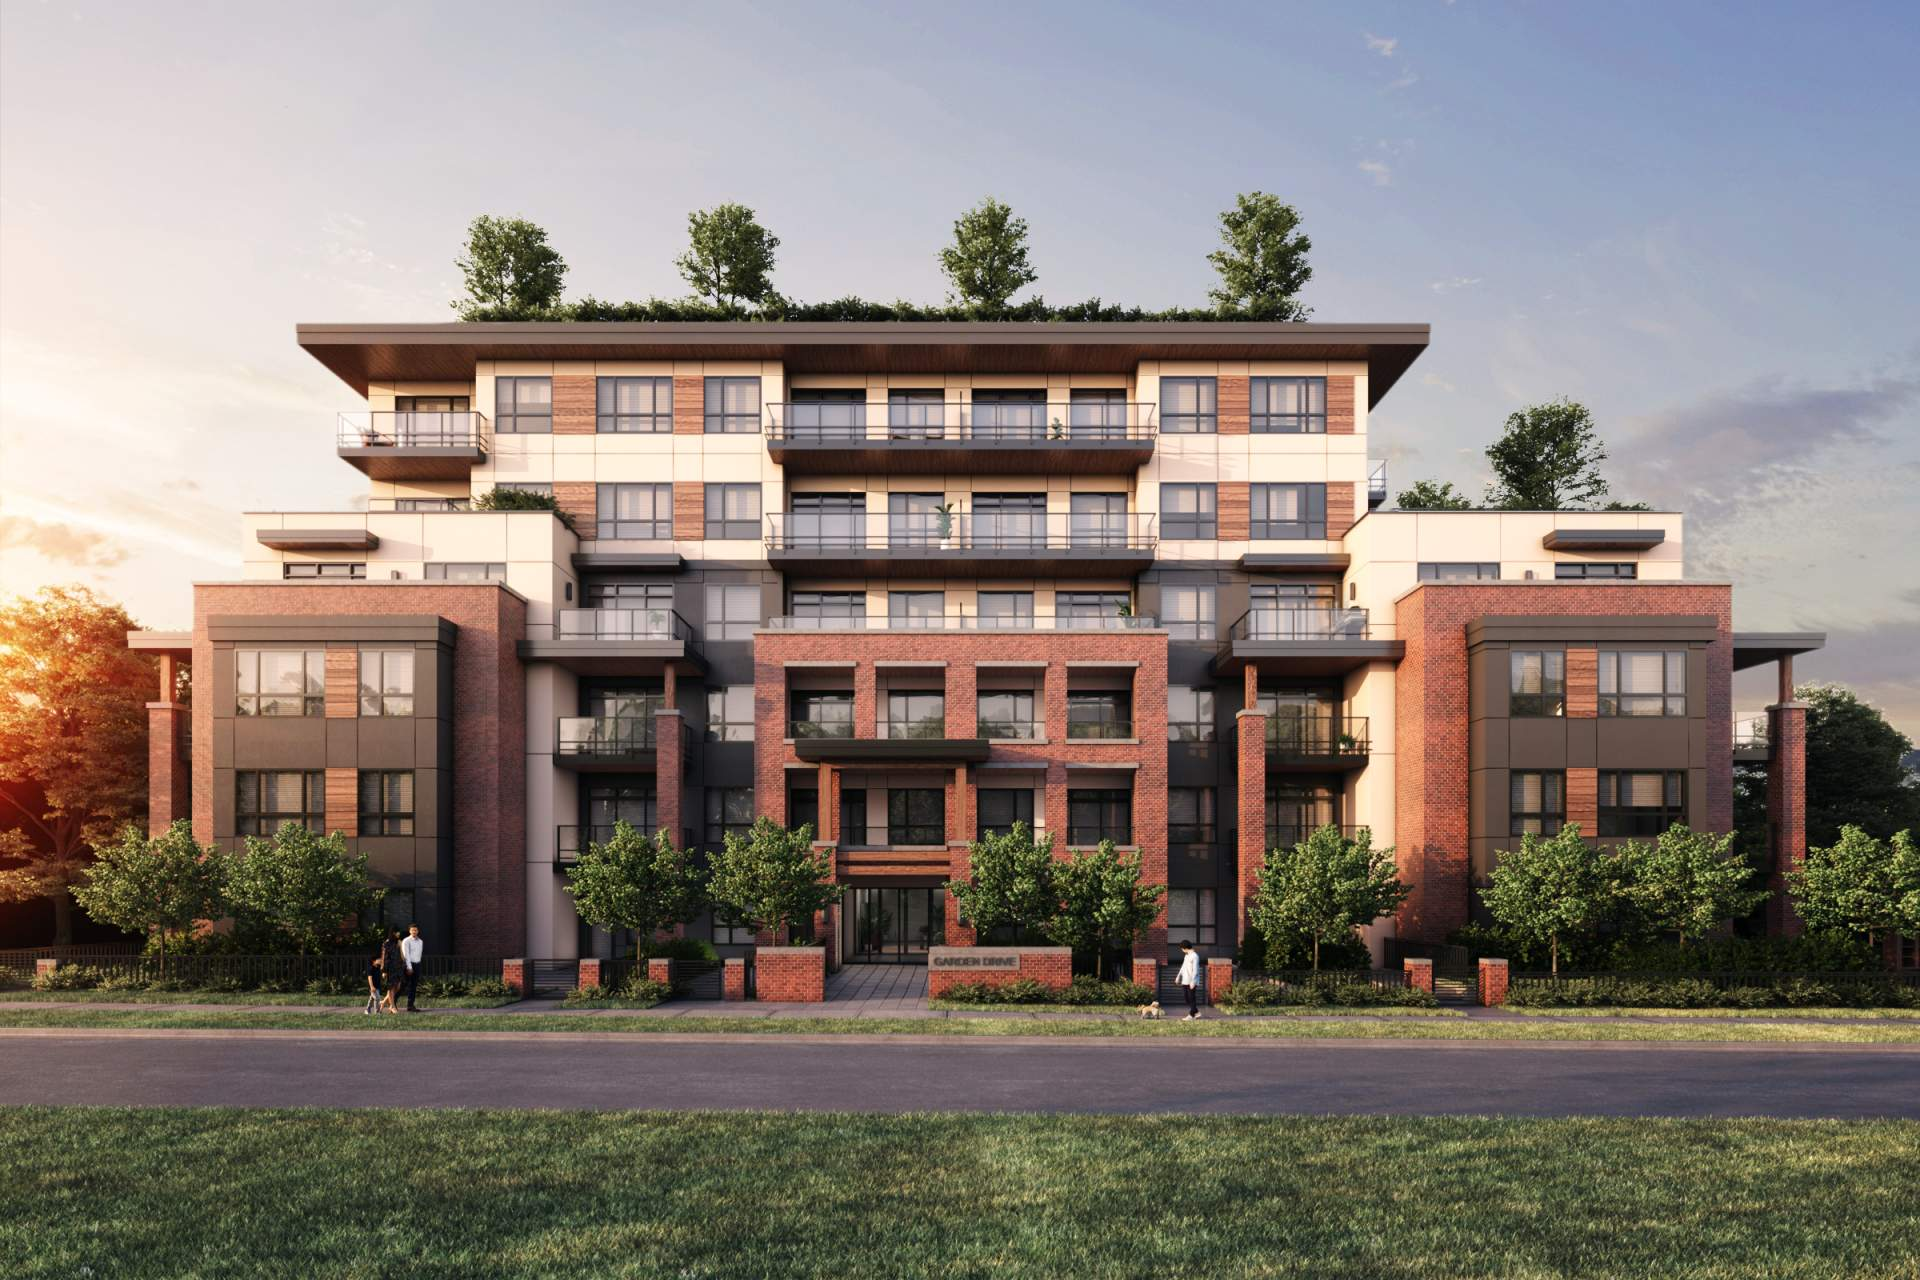 Coming fall 2022, 2550 Garden Drive is a collection of 69 homes available in 1- to 3-bedroom floorplans.